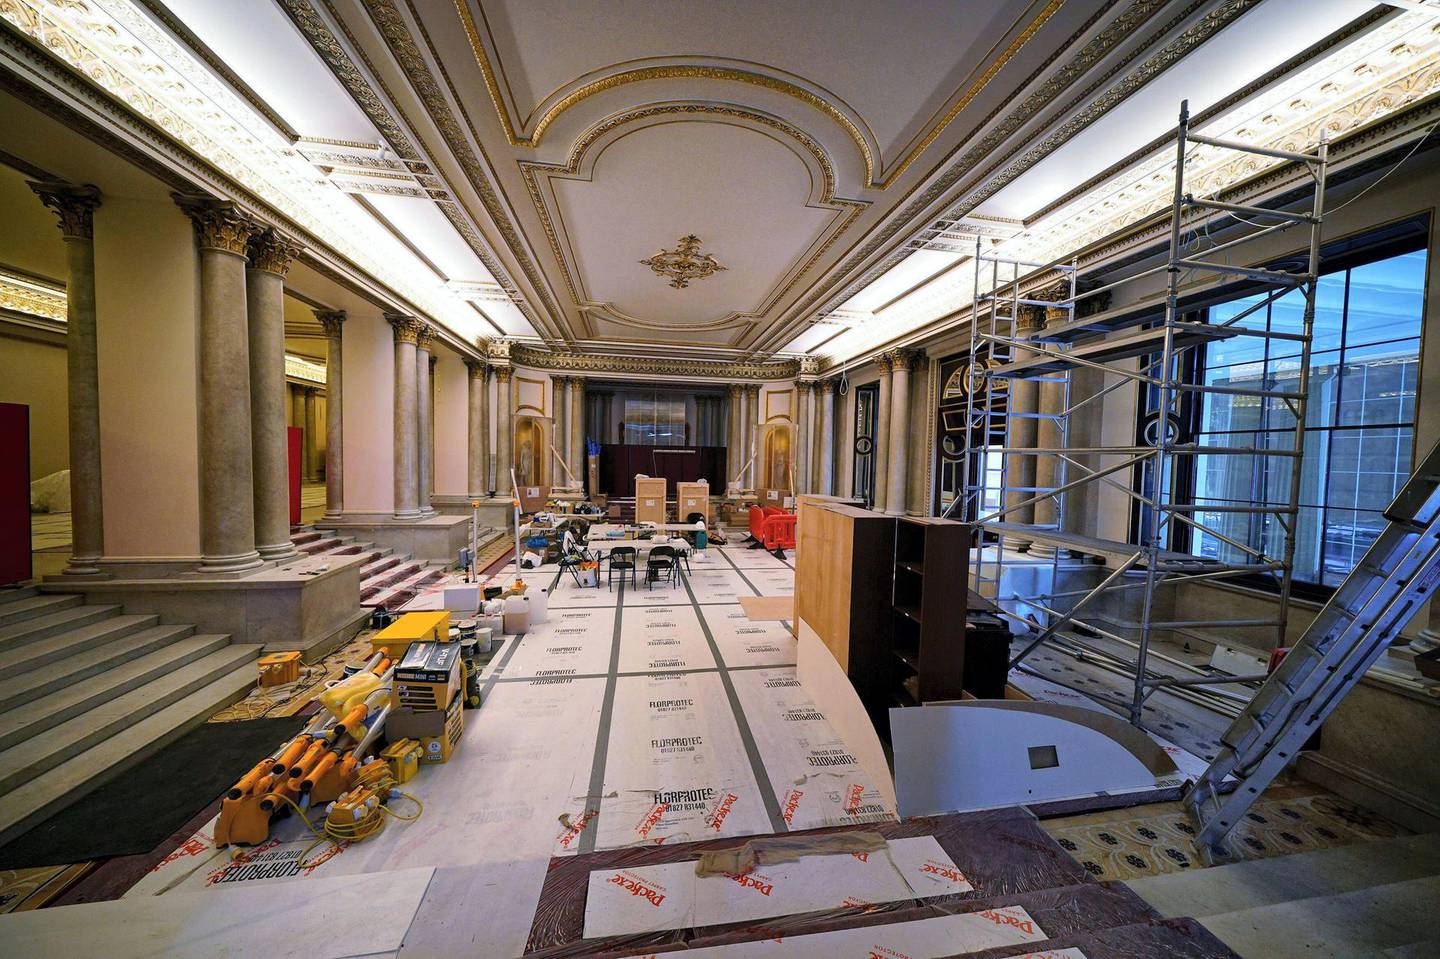 2G4XTN1 Building work takes place in the Grand Entrance Hall at Buckingham Palace in London, part of the 10-year refurbishment programme for the royal residence. Picture date: Monday June 21, 2021.